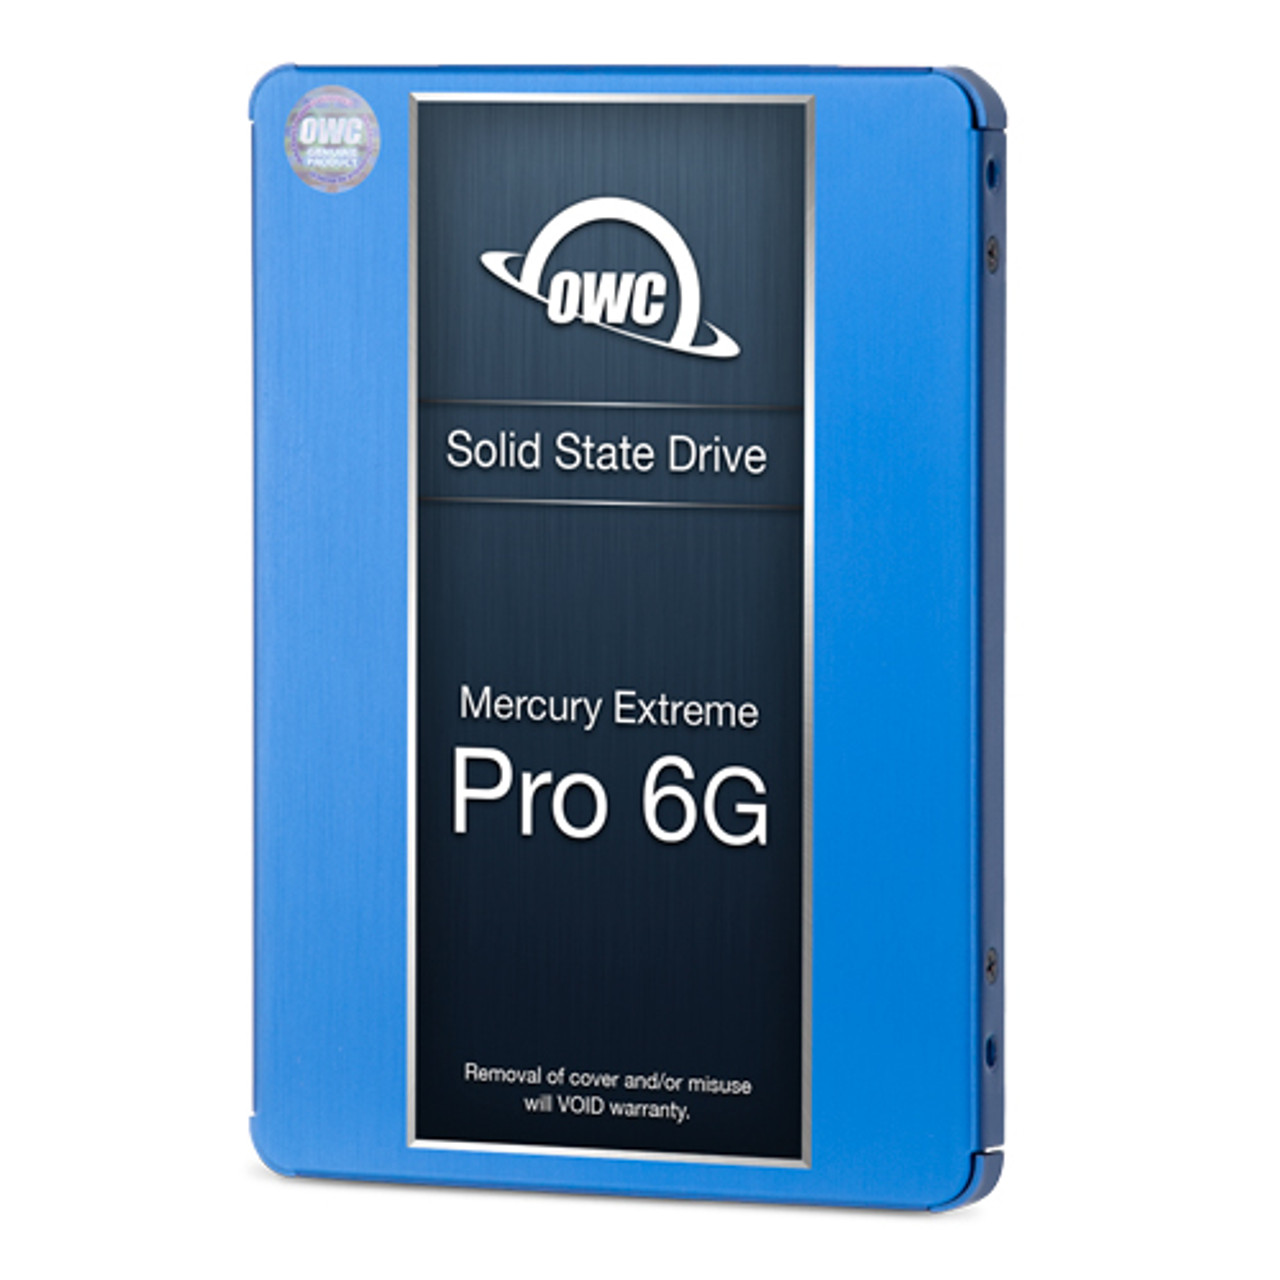 1TB OWC Mercury Extreme 6G SSD - SSD Bay Add-In Kit for 2011 21.5-inch iMacs